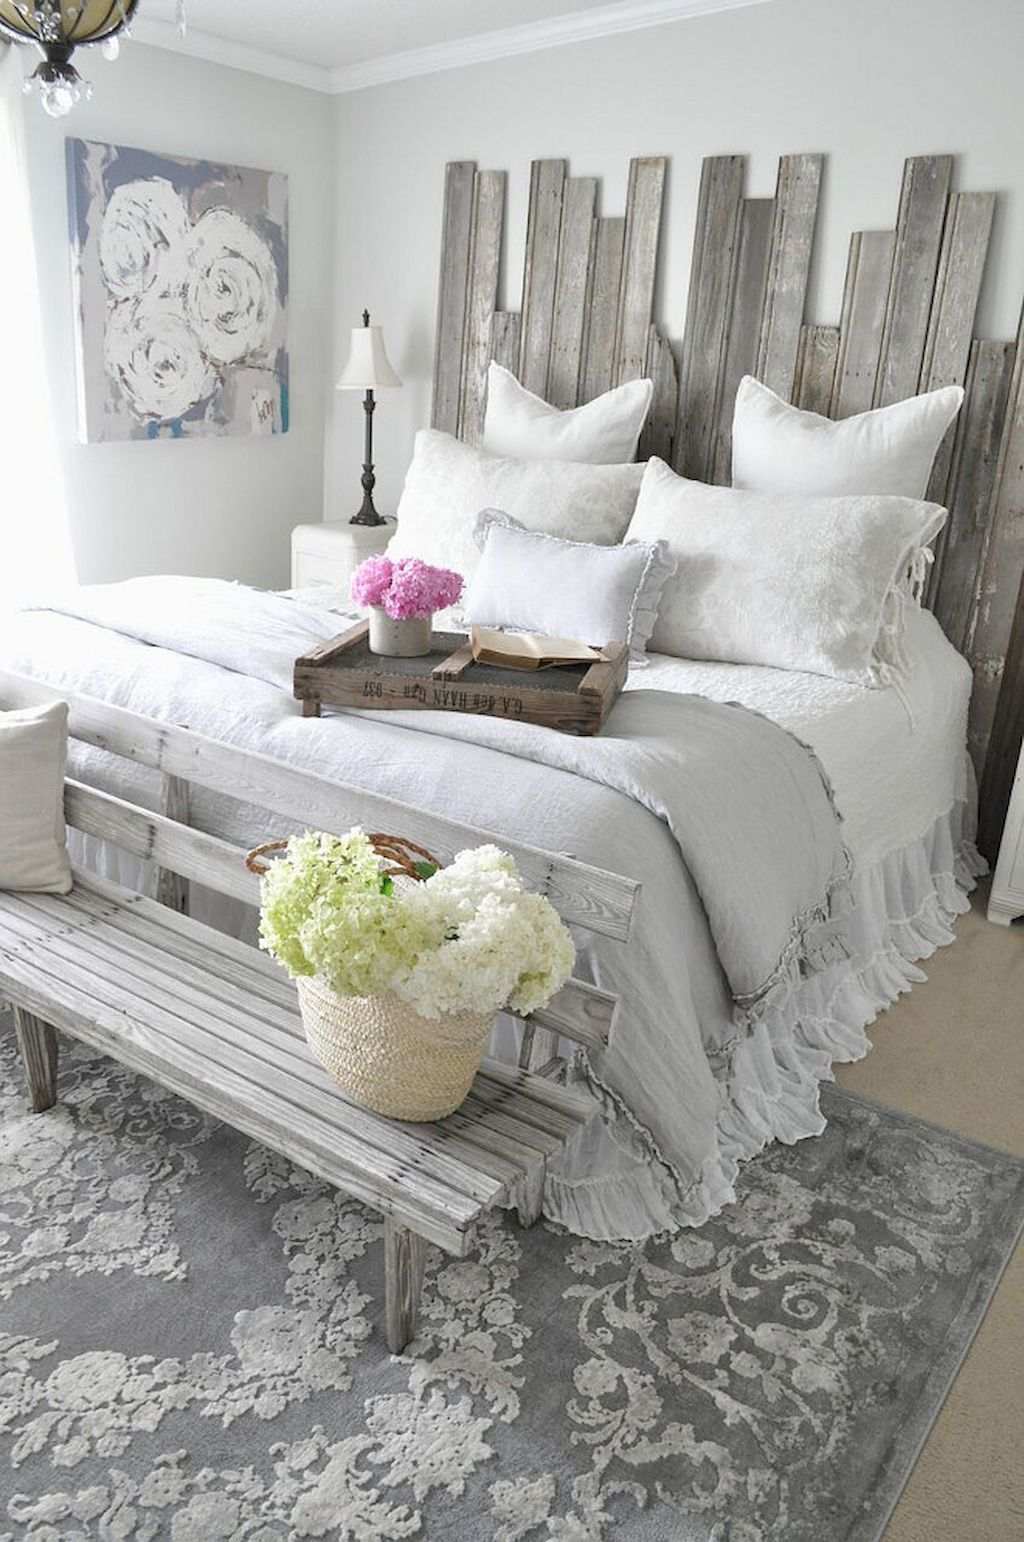 Rustic Shabby Chic Bedroom Decorating Ideas (5